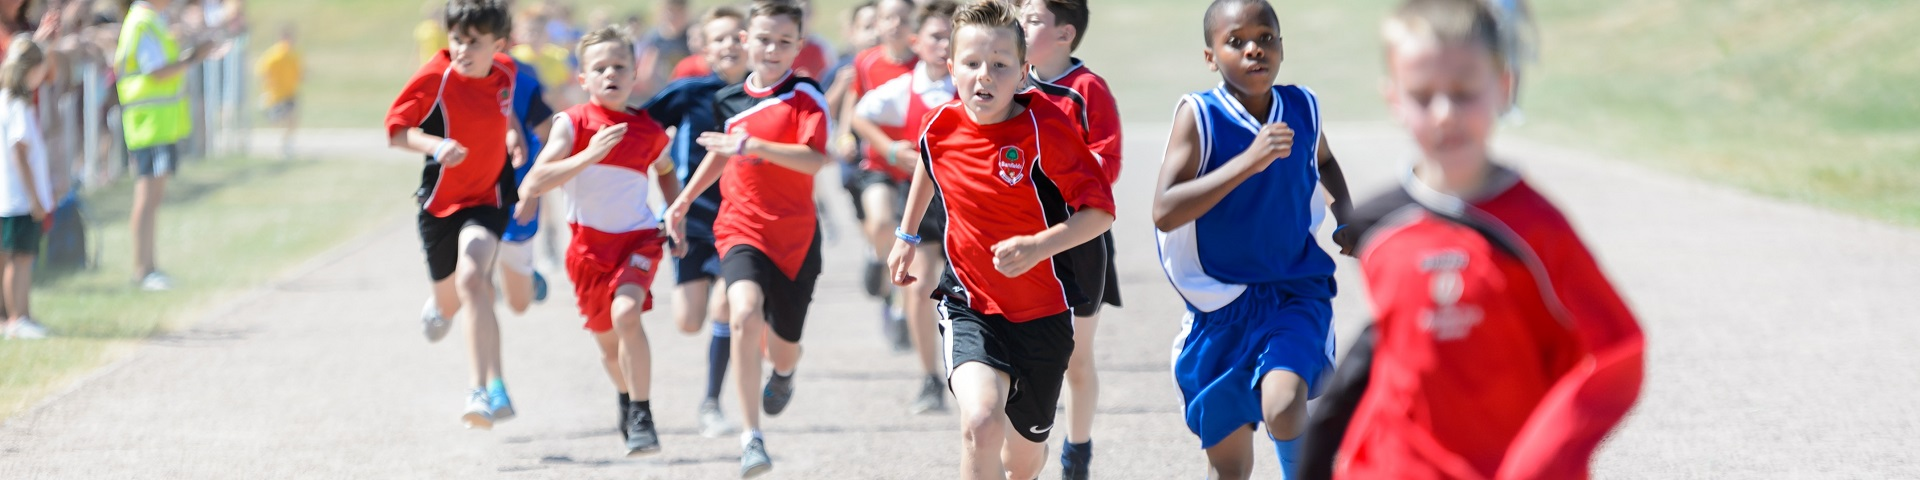 Staffordshire and Stoke on trent school games